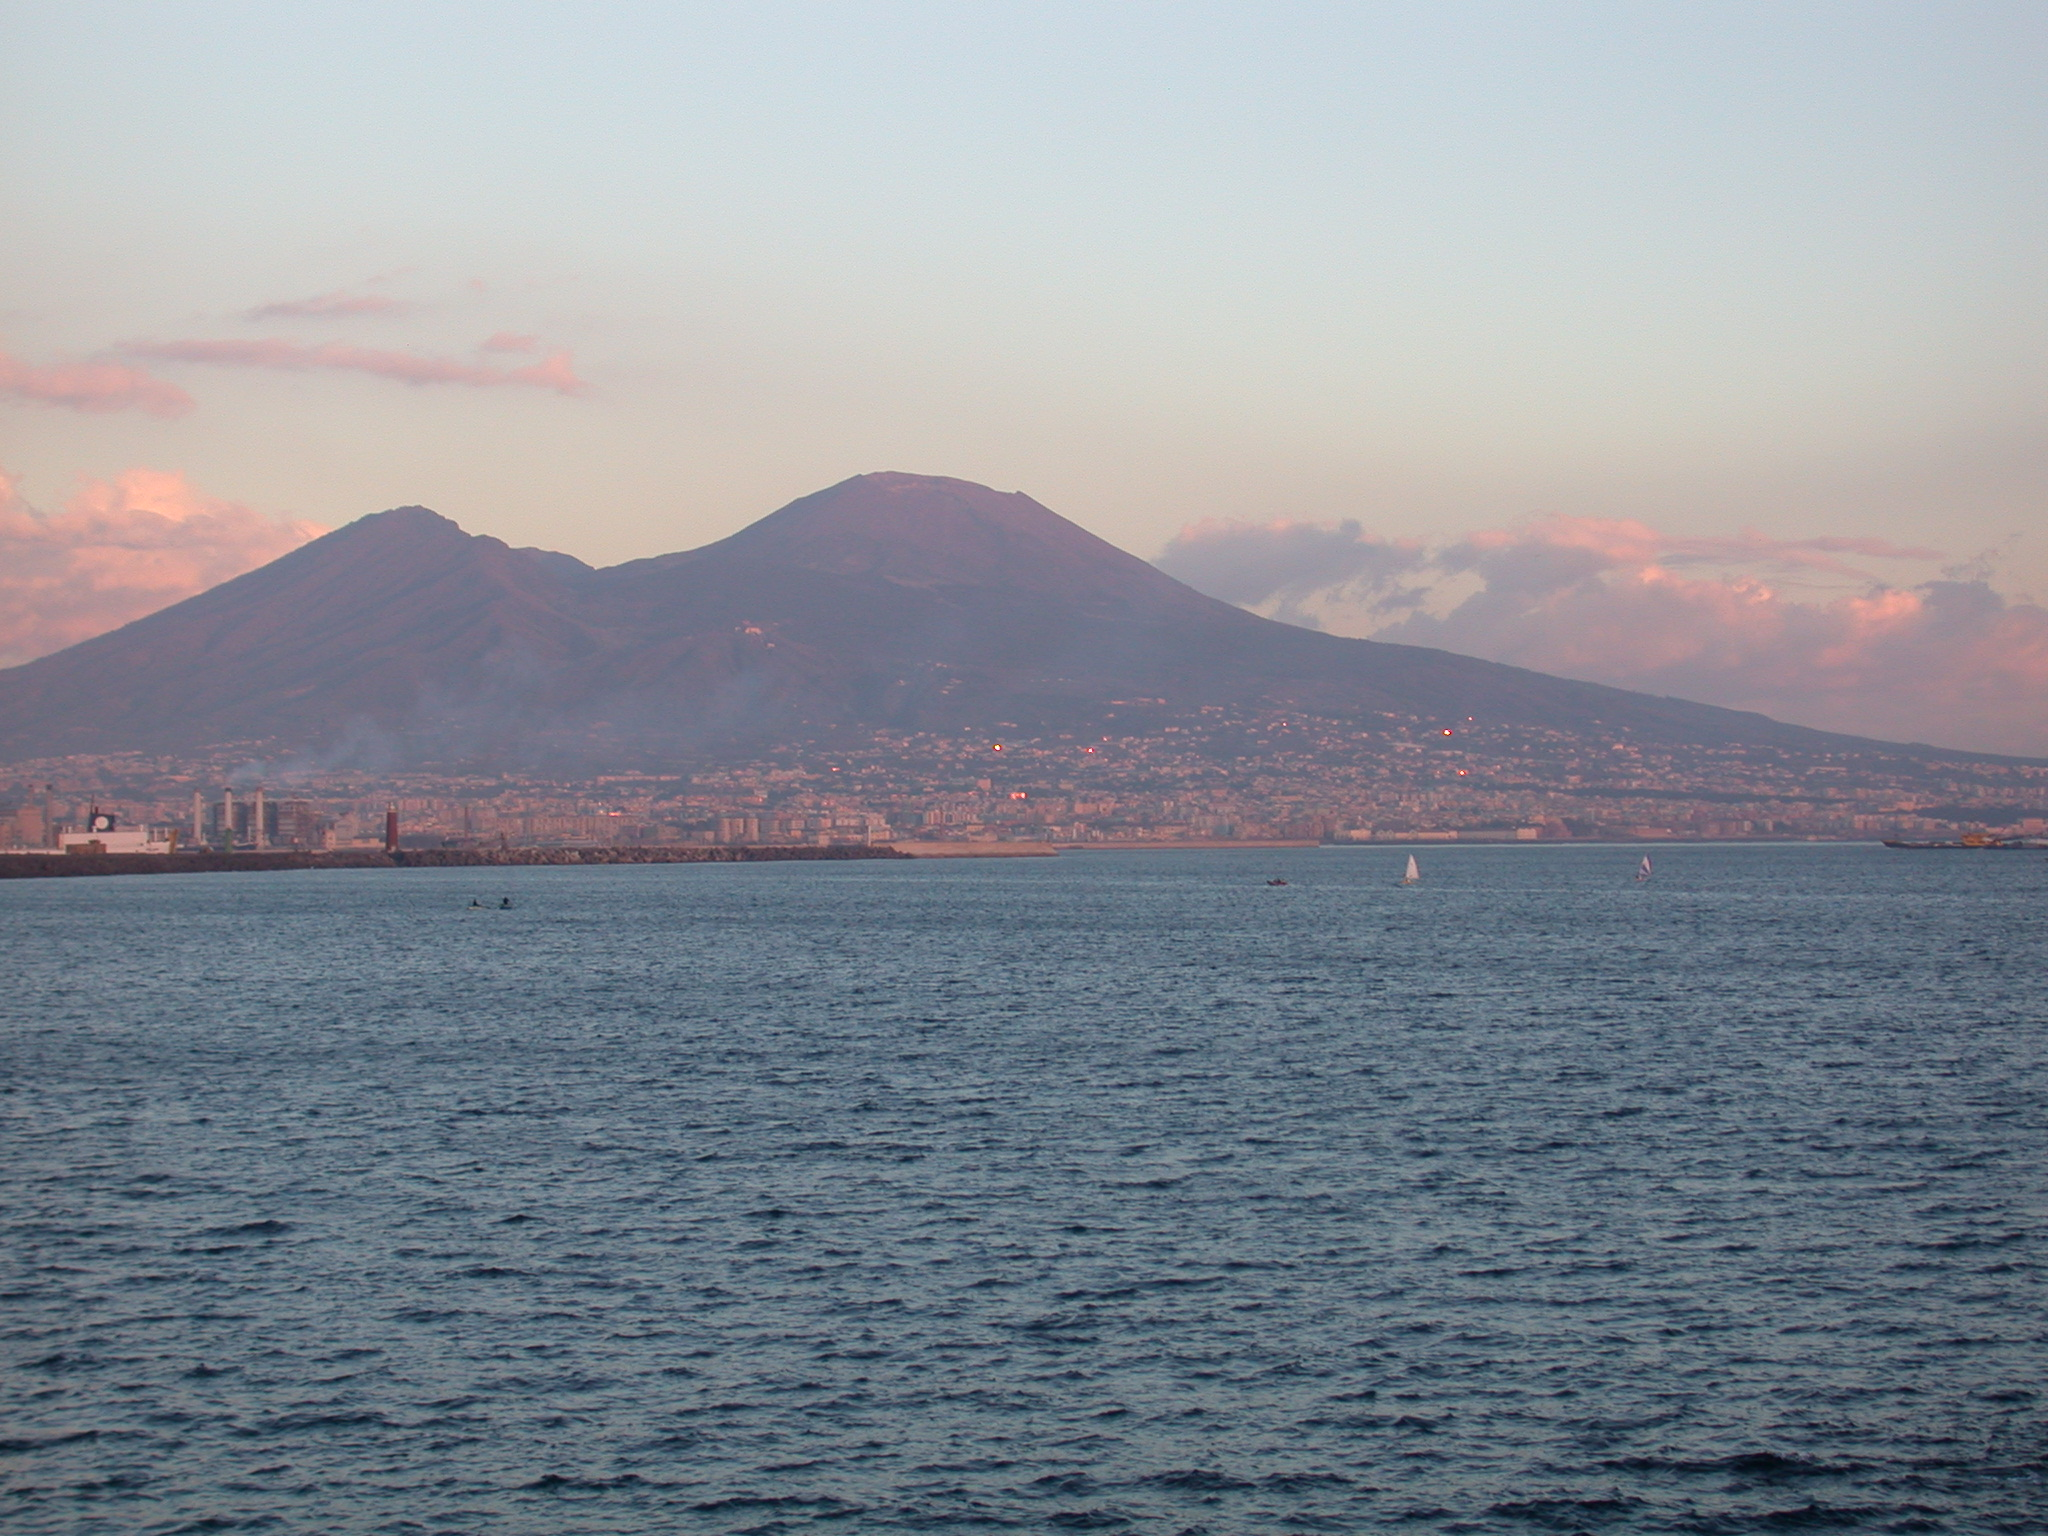 Vesuvius_from_Naples_at_sunset.jpg